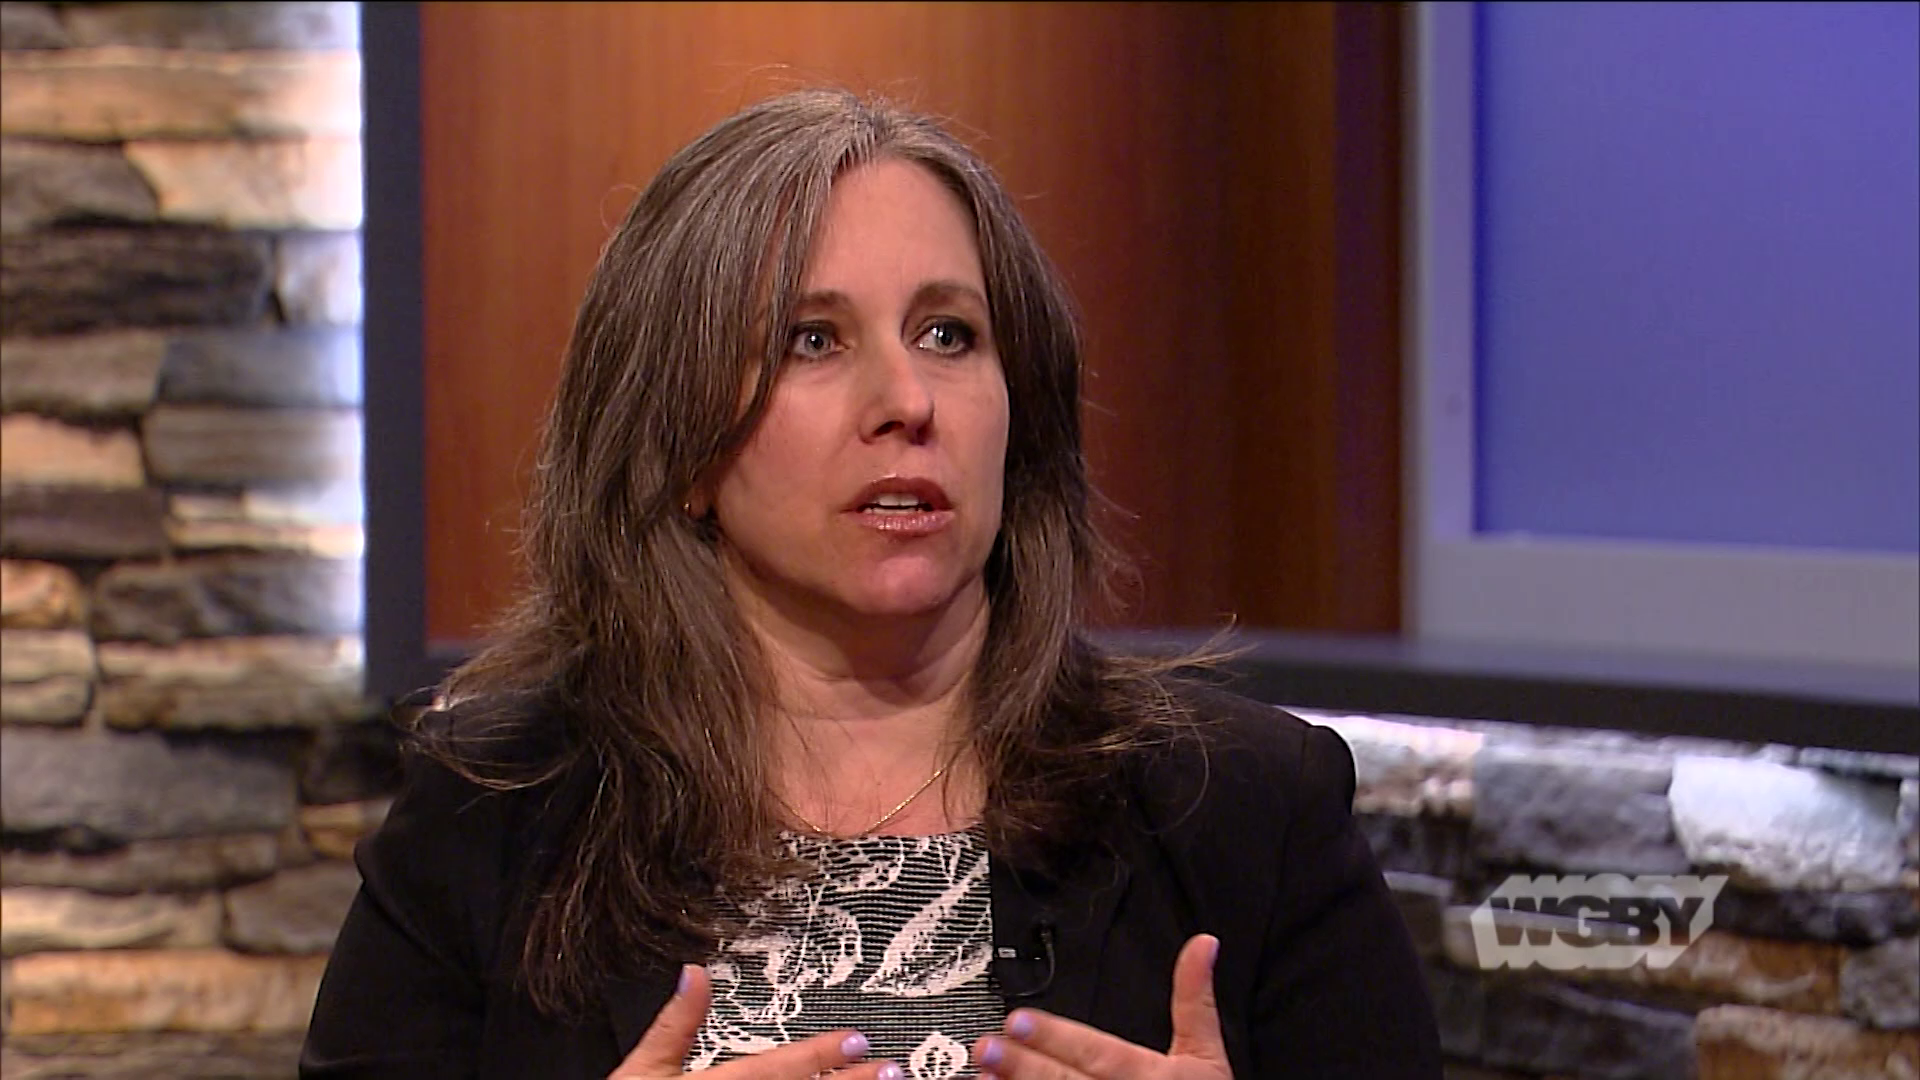 Prof. Jennifer Taub, a Northampton resident, speaks about being offered money in exchange for information about special counsel Robert Mueller.